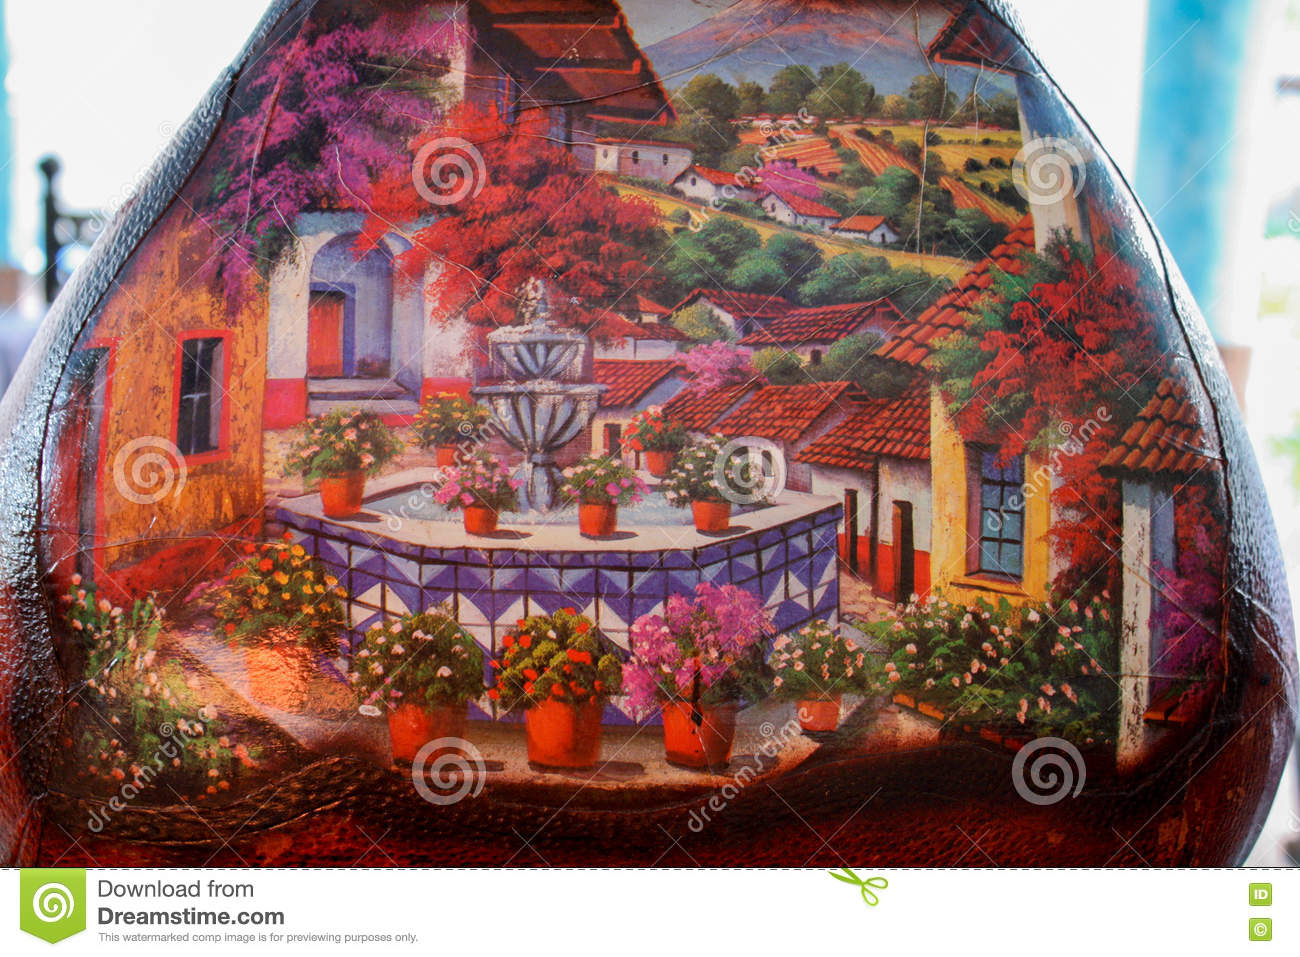 Painting on vase stock image image of interior fixture 71687205 painting on vase reviewsmspy